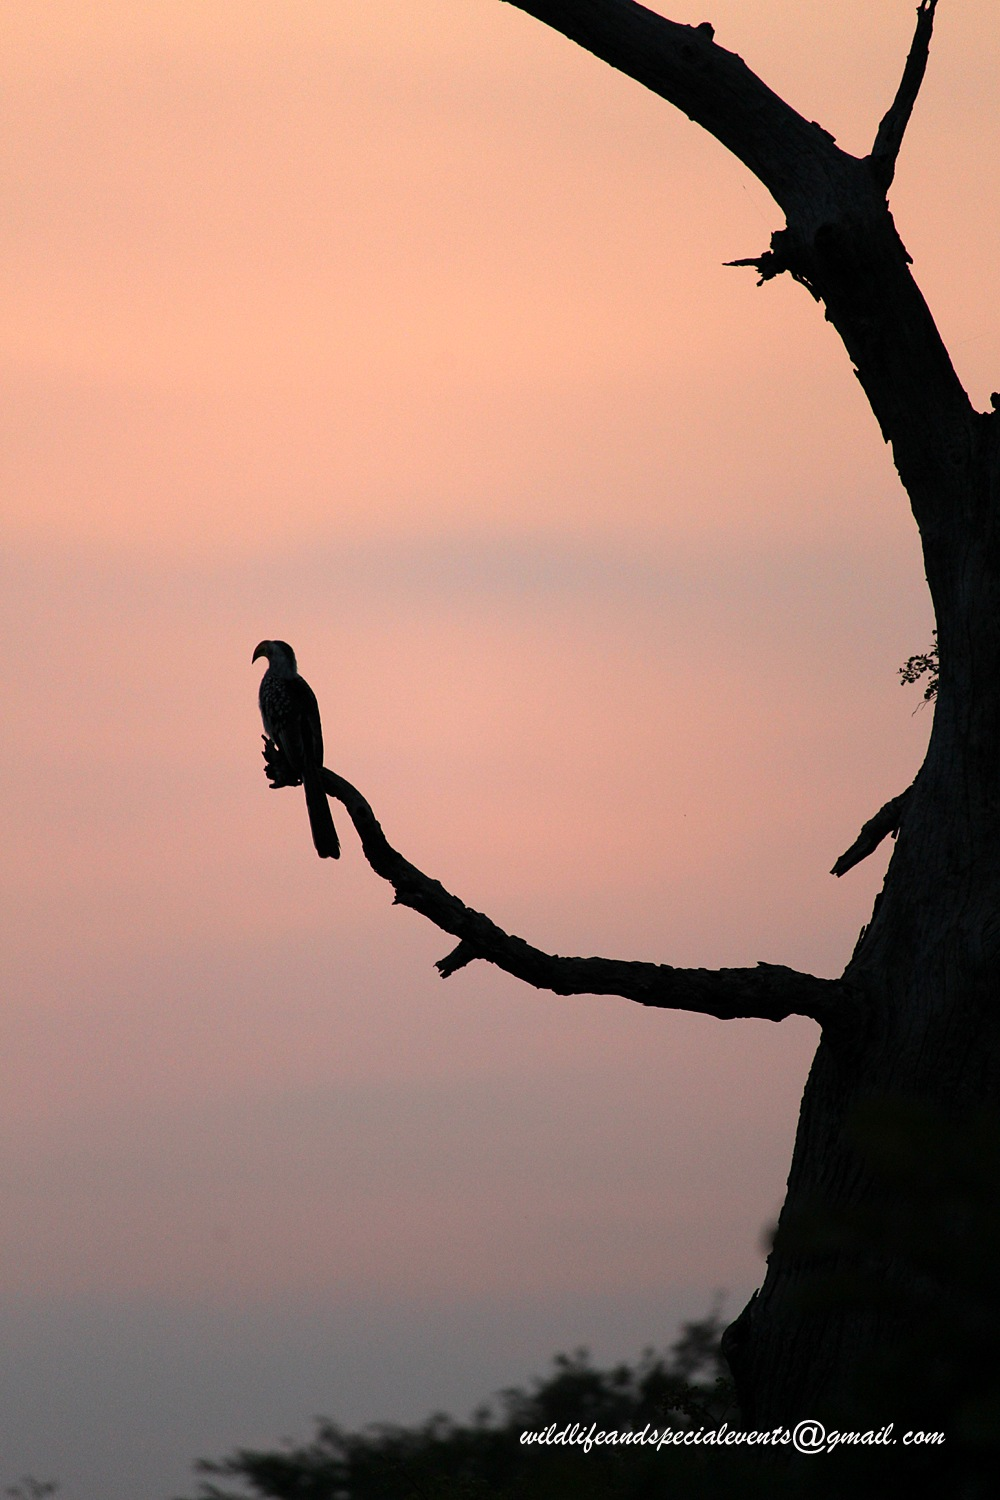 The hornbill at sunrise by oosie